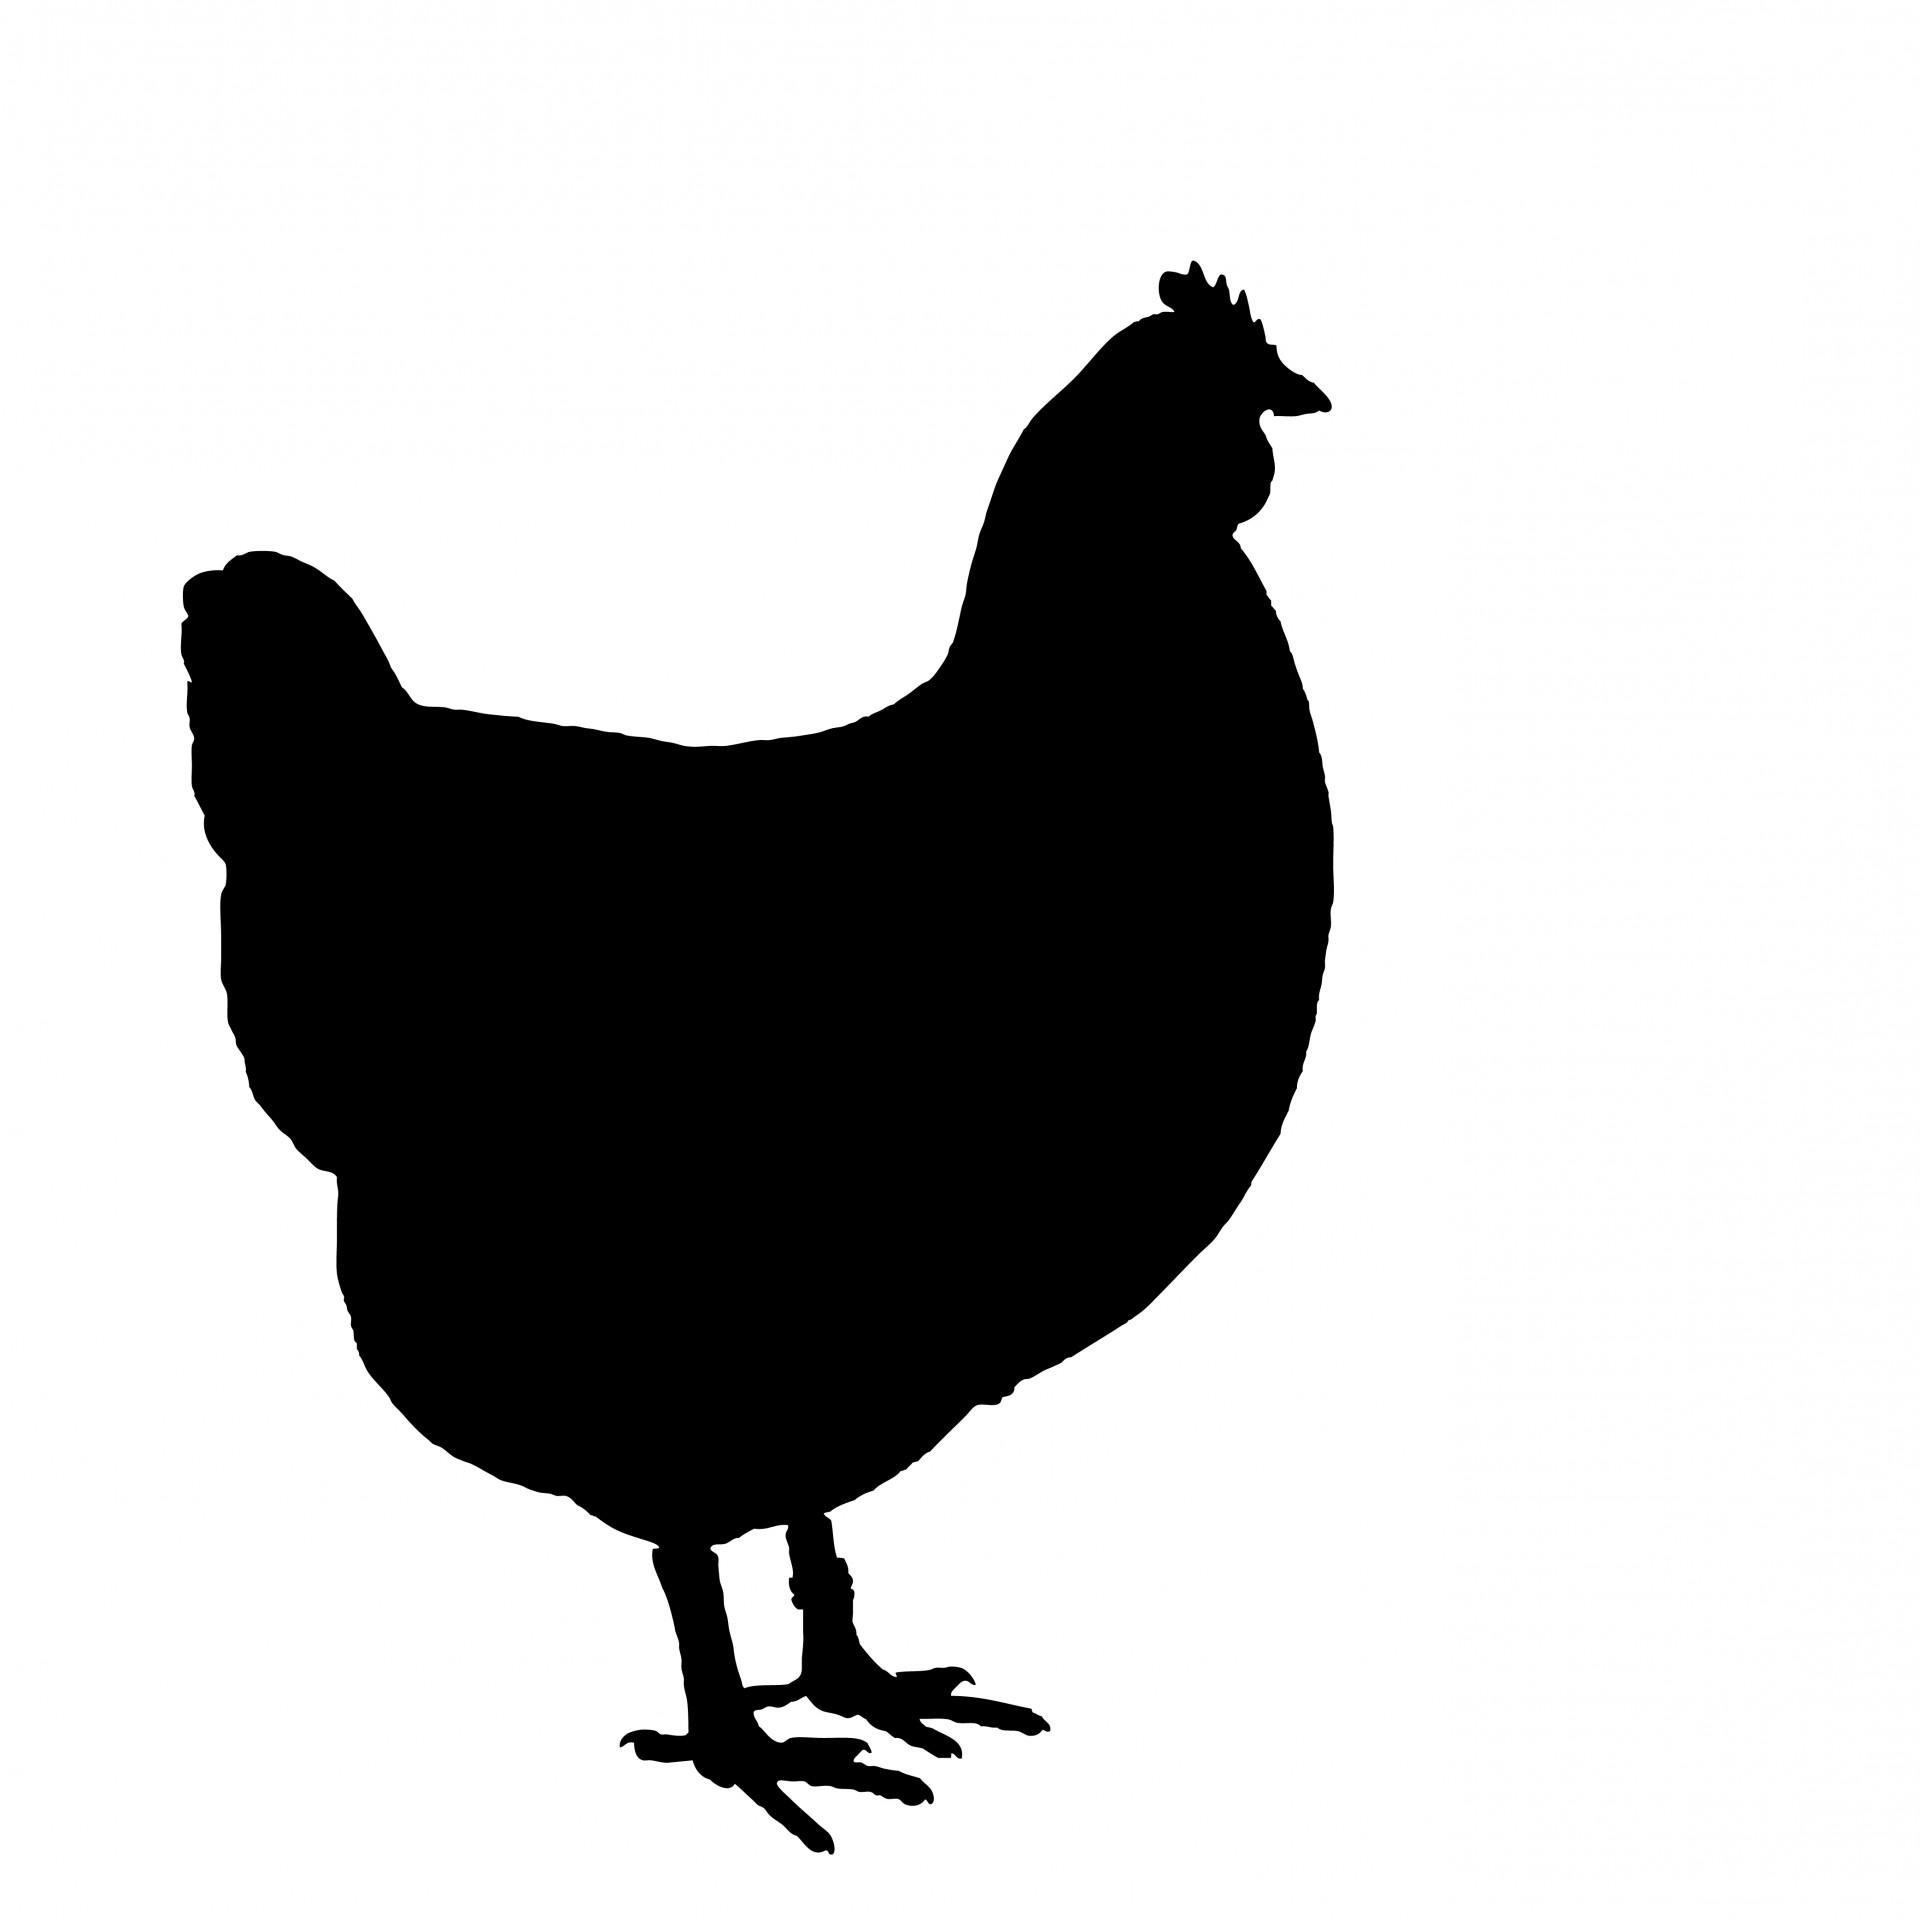 Chicken black clipart clipart Black And White Chicken Clipart | Free download best Black And White ... clipart